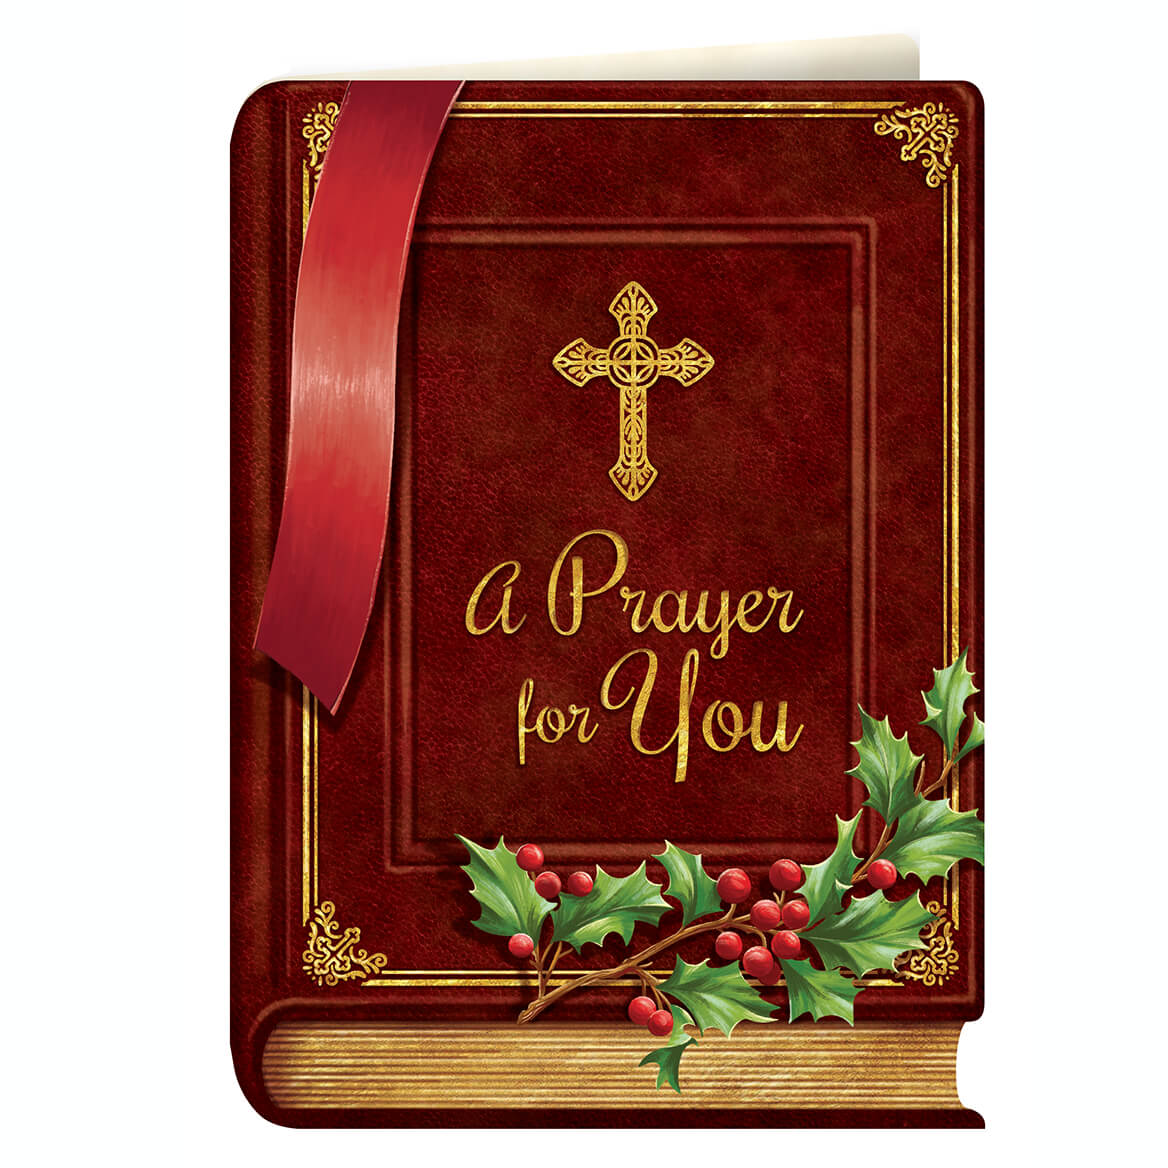 Prayer Card Gift - Personalized Christmas Cards - Walter Drake